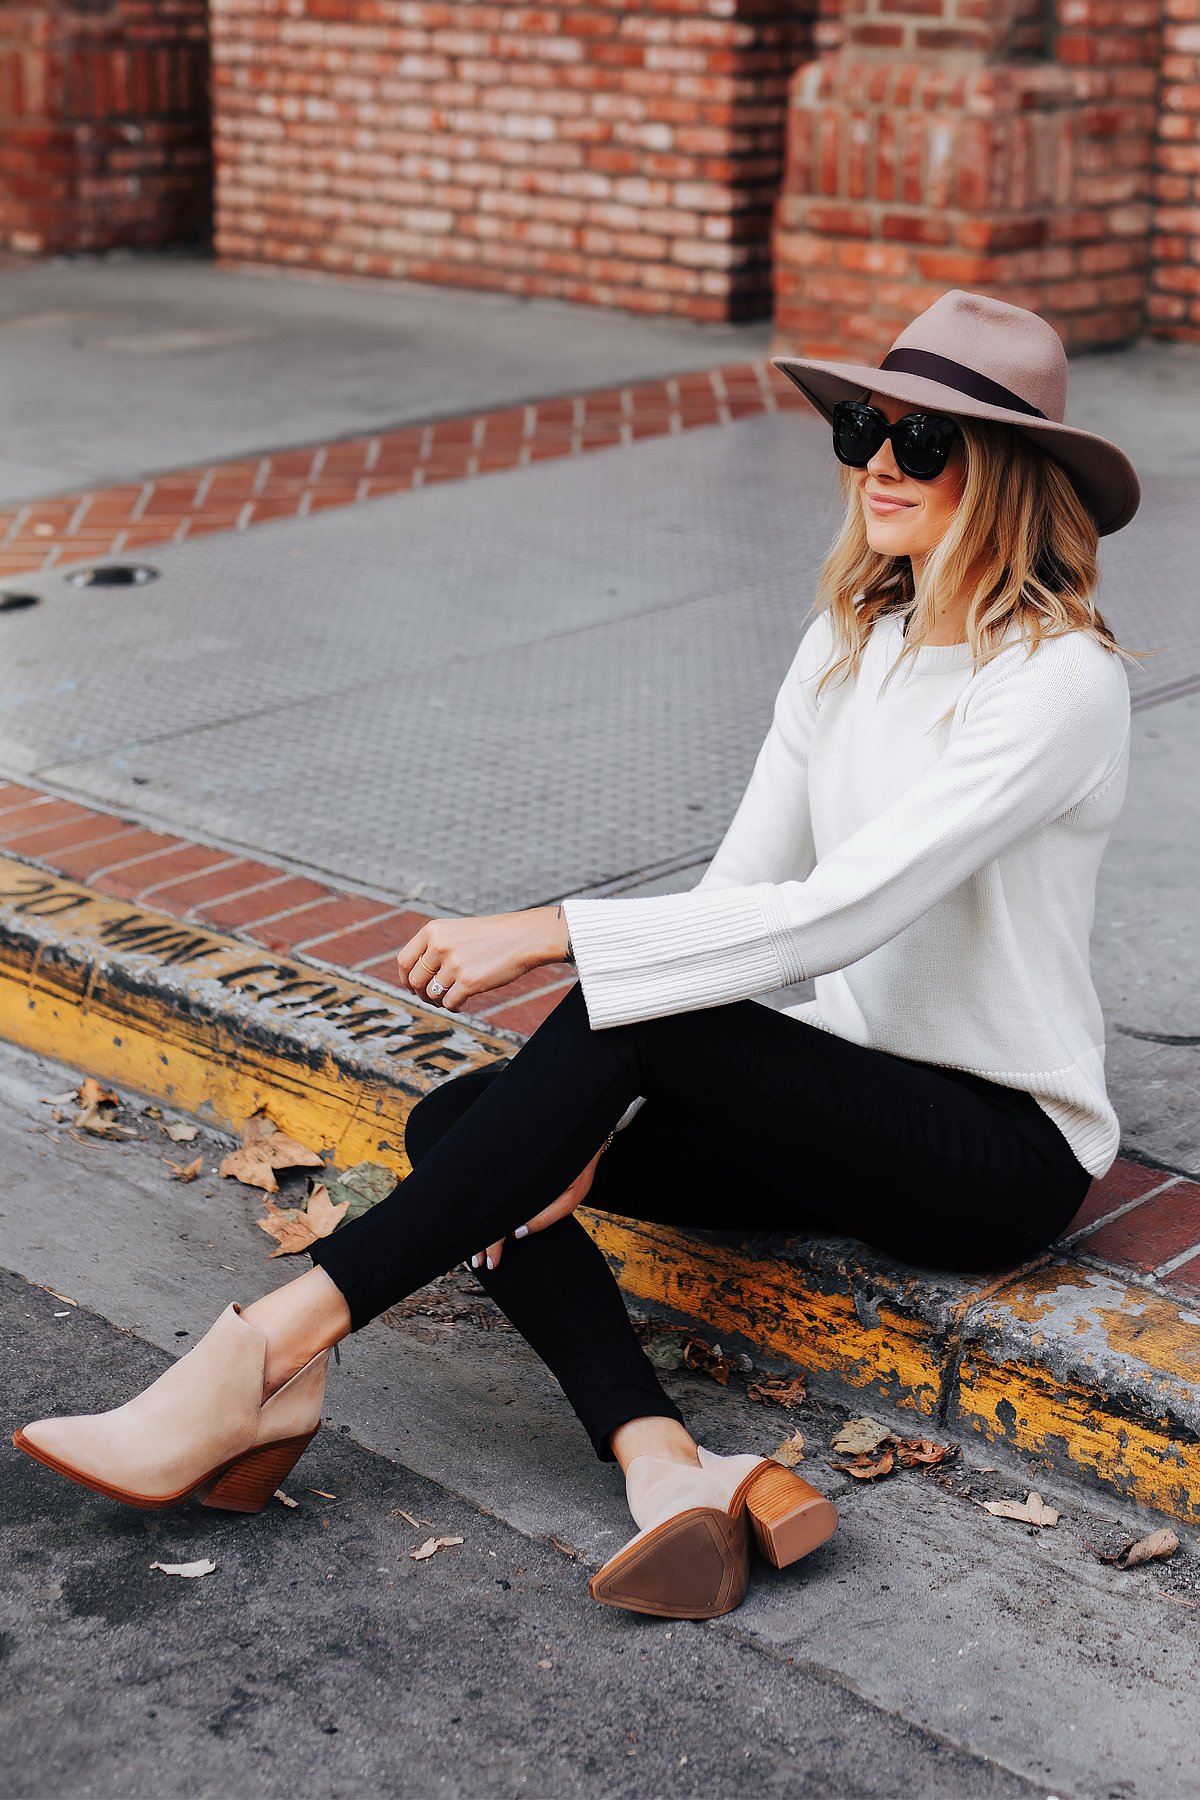 Fashion Jackson Wearing Ann Taylor Floppy Wool Hat Ann Taylor White Sweater Black Skinny Jeans Tan Booties Fall Outfit 1